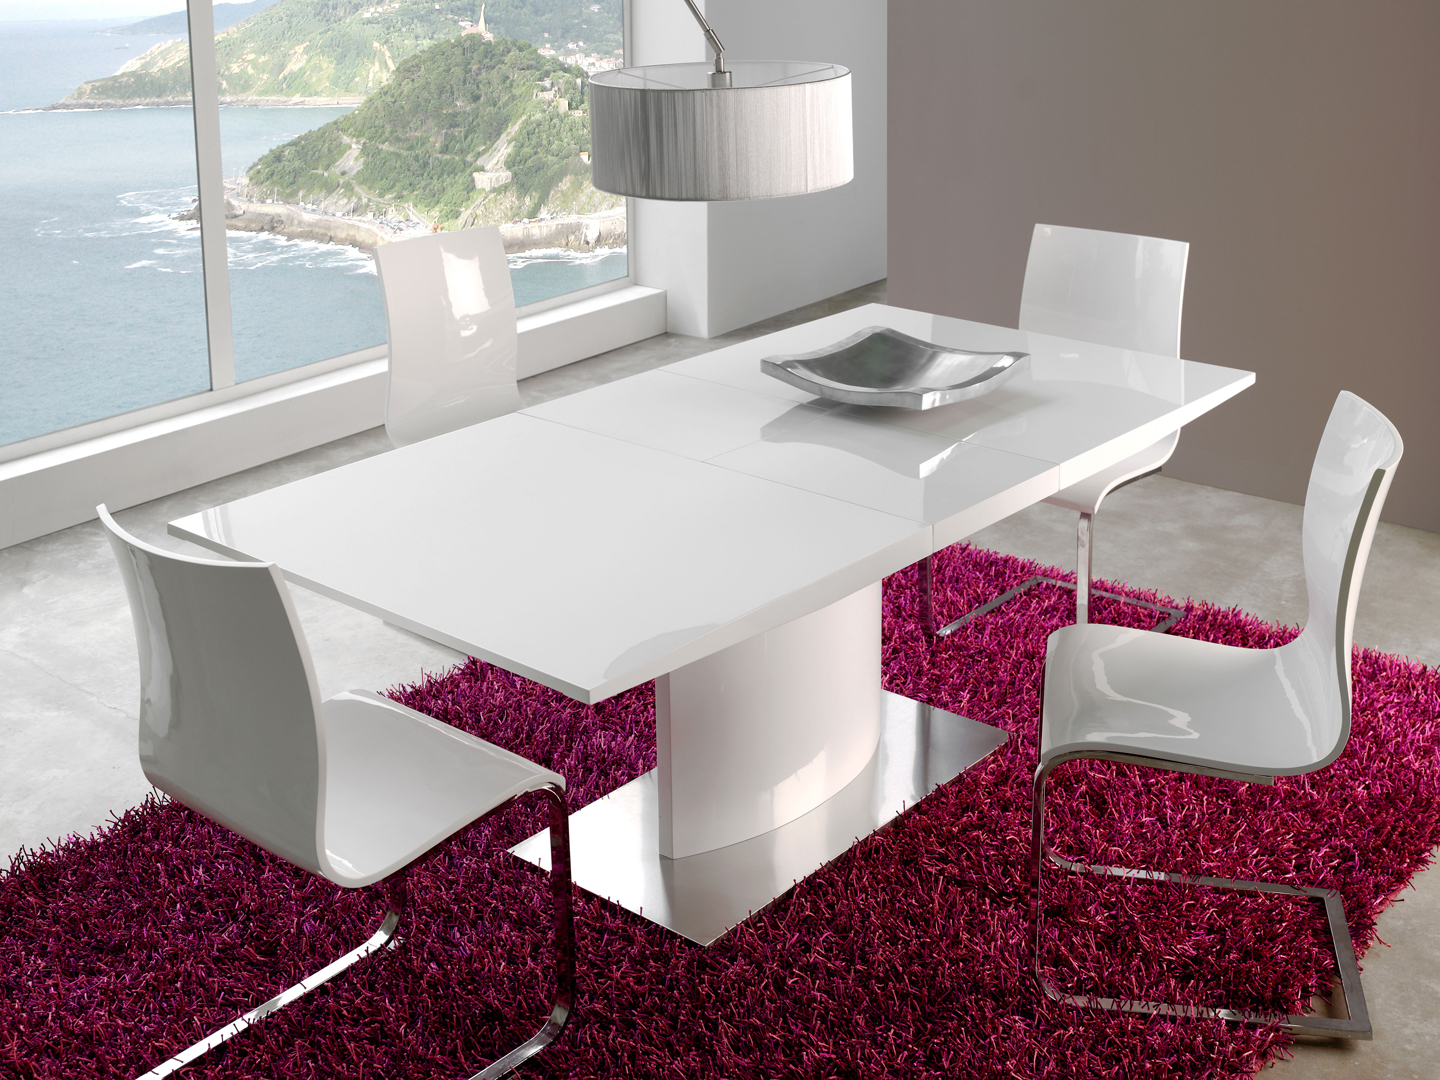 white kitchen table modern modern kitchen tables Dining Table White White Dining Room Furniture Modern Design The Modern white dining room sets